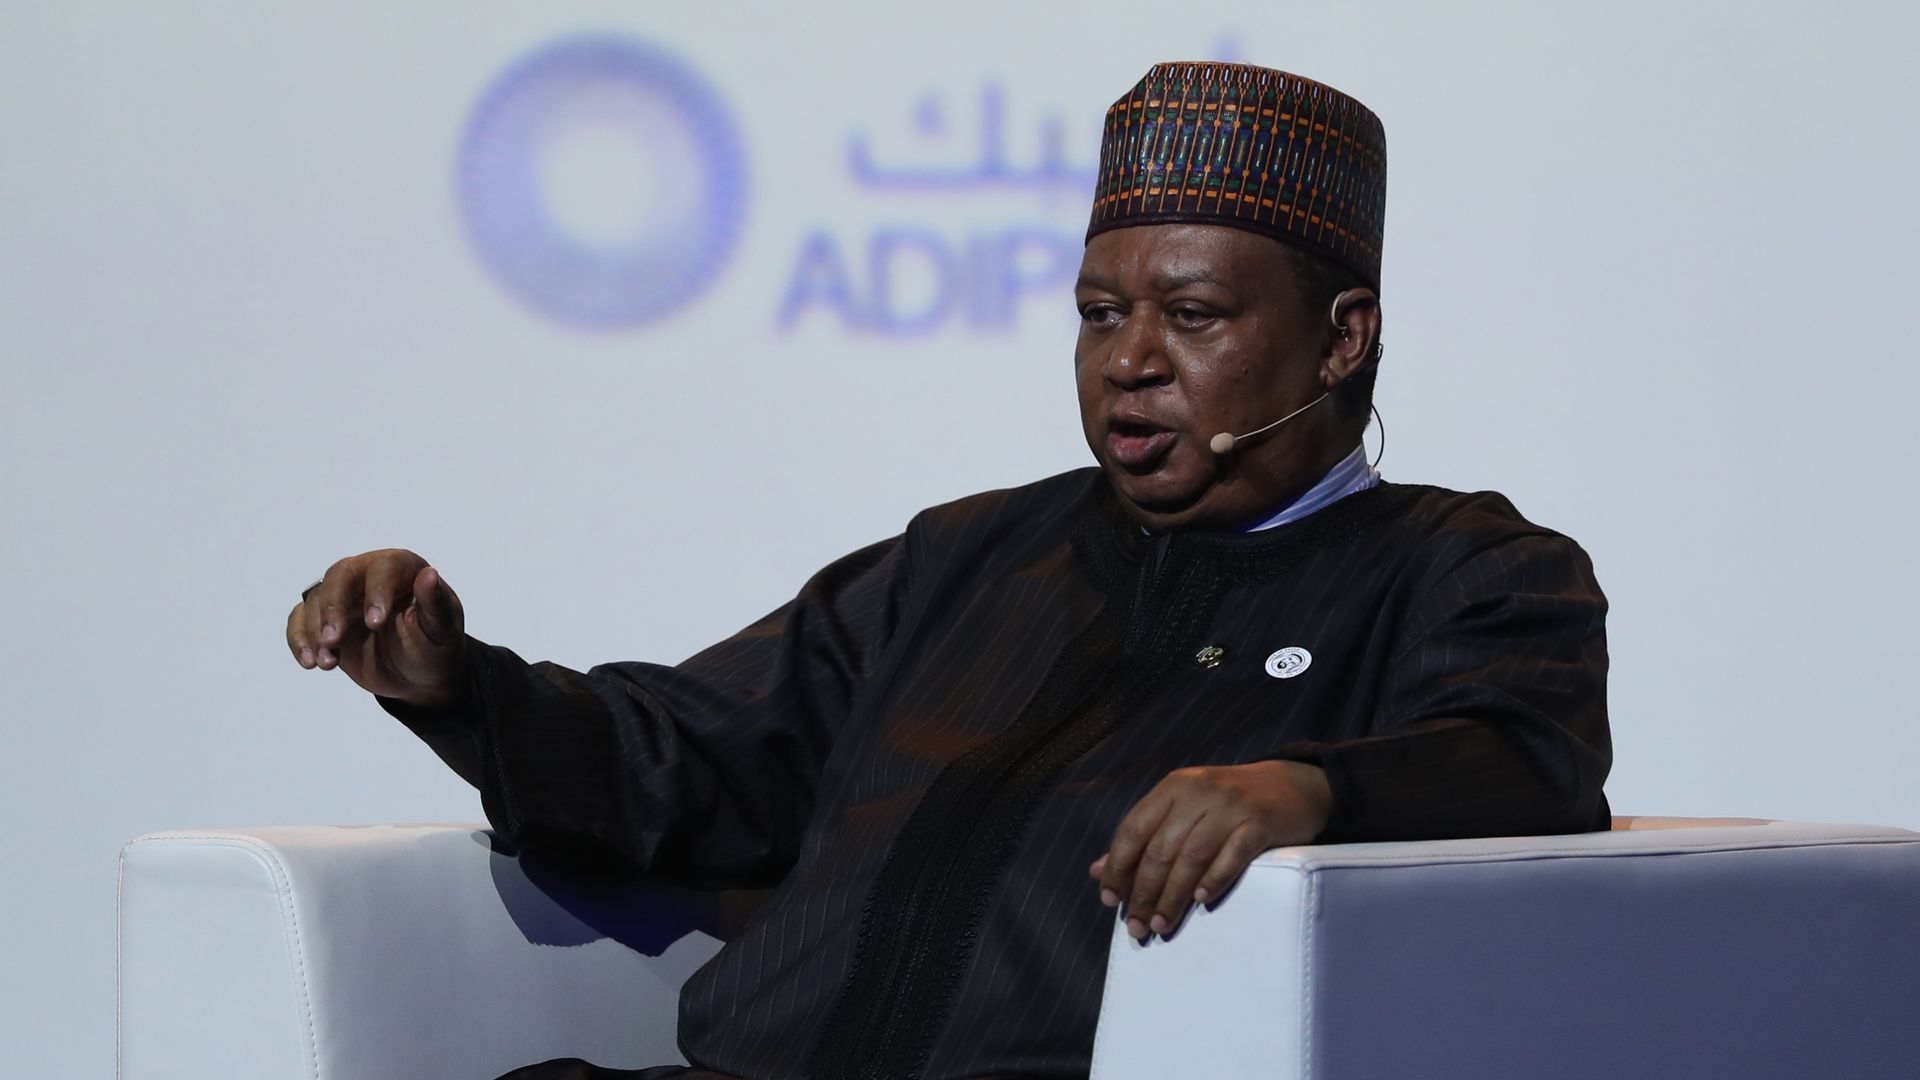 OPEC Secretary General Mohammed Barkindo